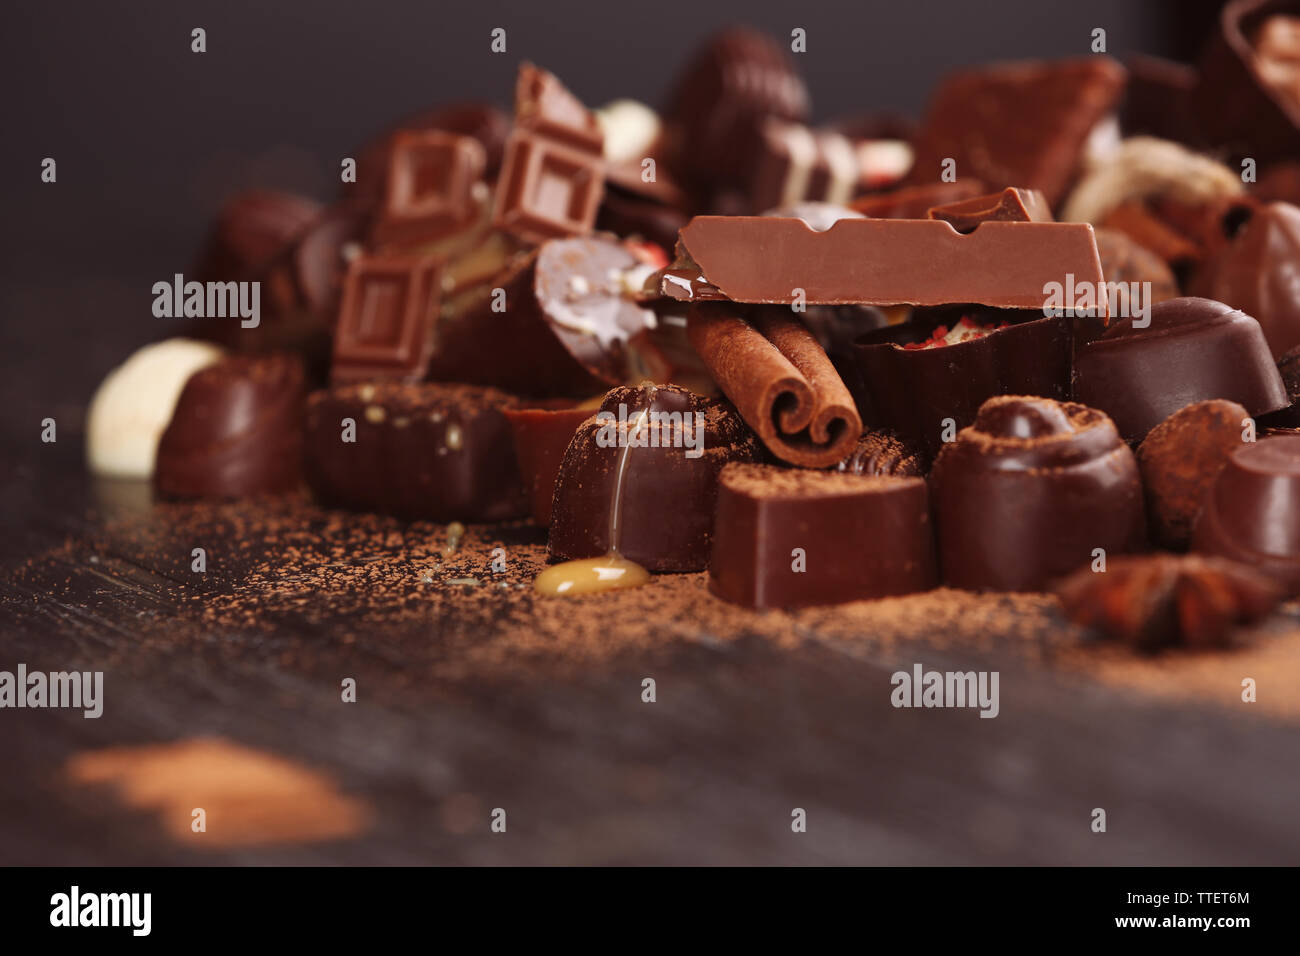 Assortment of tasty chocolate candies and cinnamon on wooden table background - Stock Image